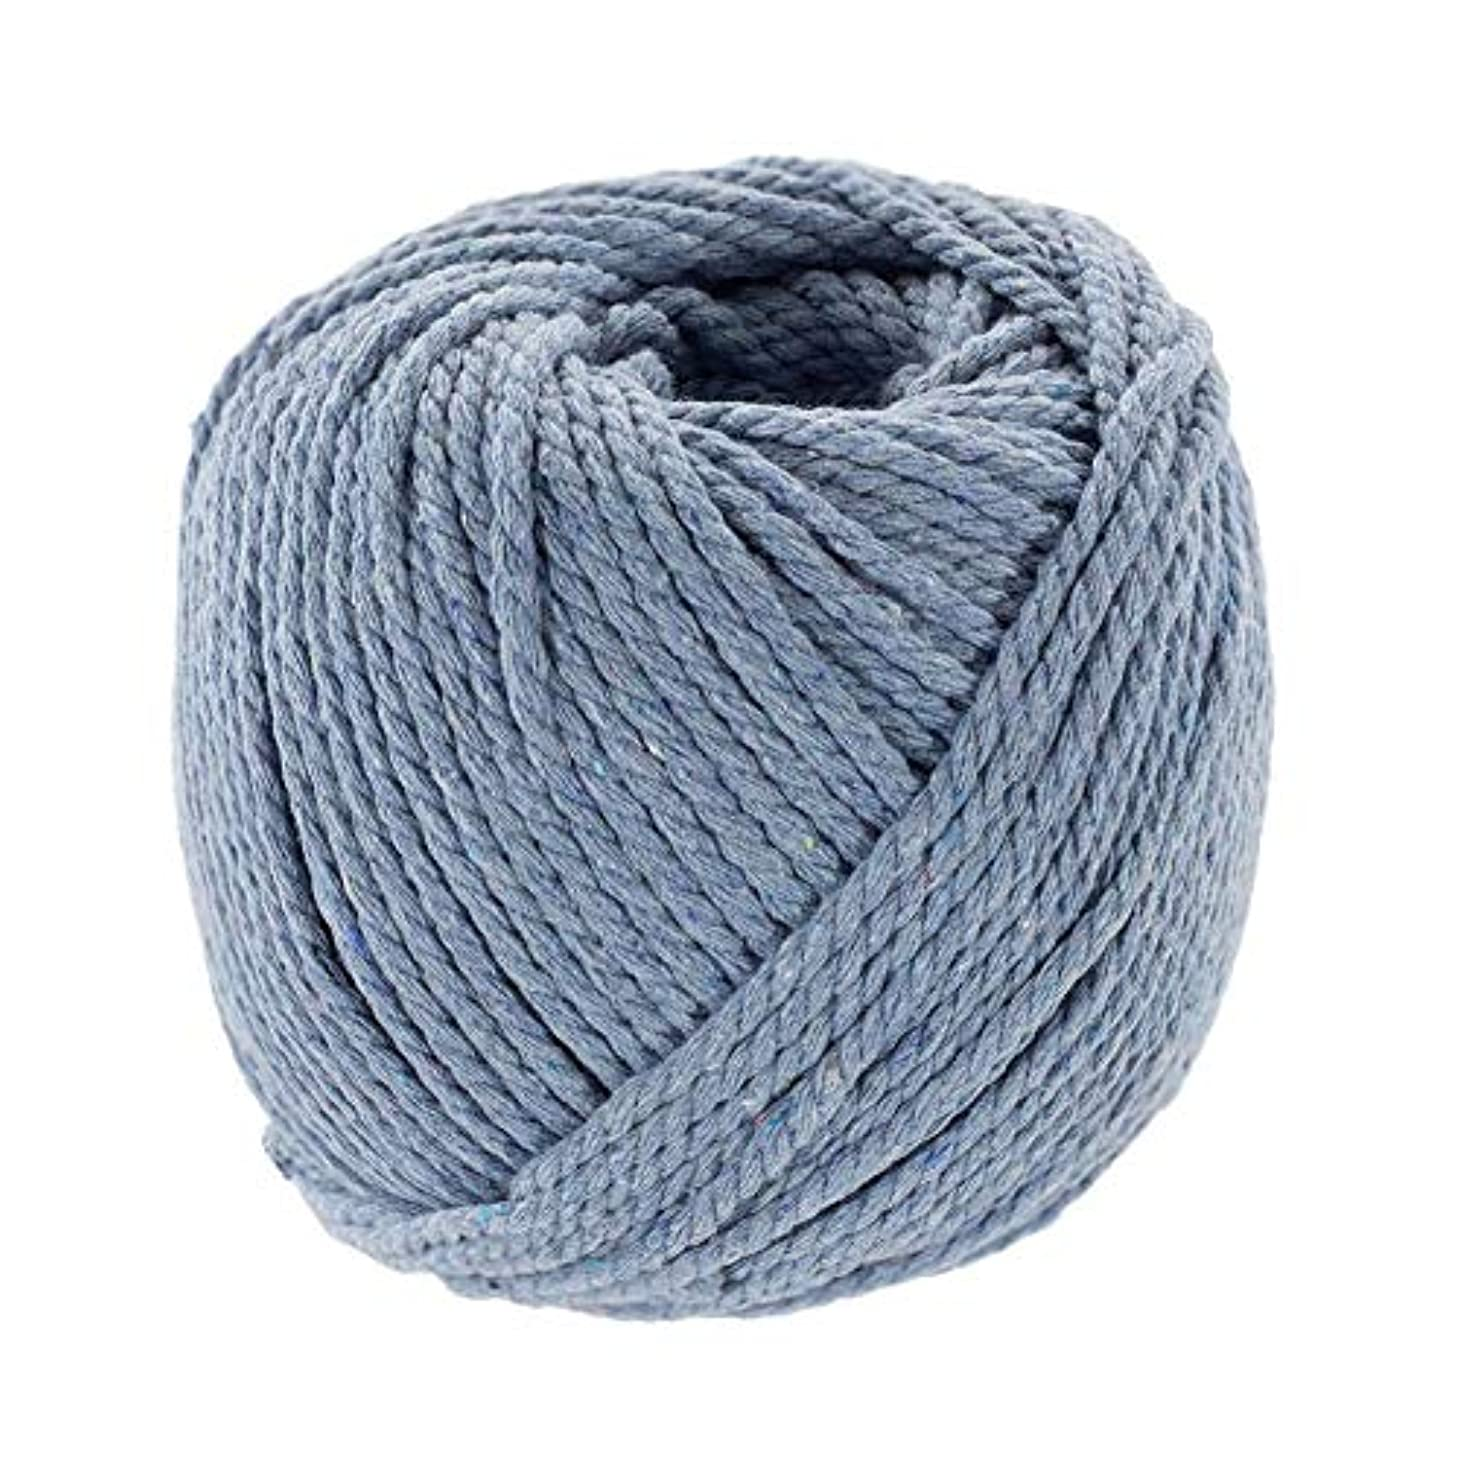 Ceil Blue, 3mm X 50m (About 55 Yards) Decorative Natural Bohemia Macramé Knitting Craft Cotton Rope Handmade DIY Wall Hangings Plant Hangers